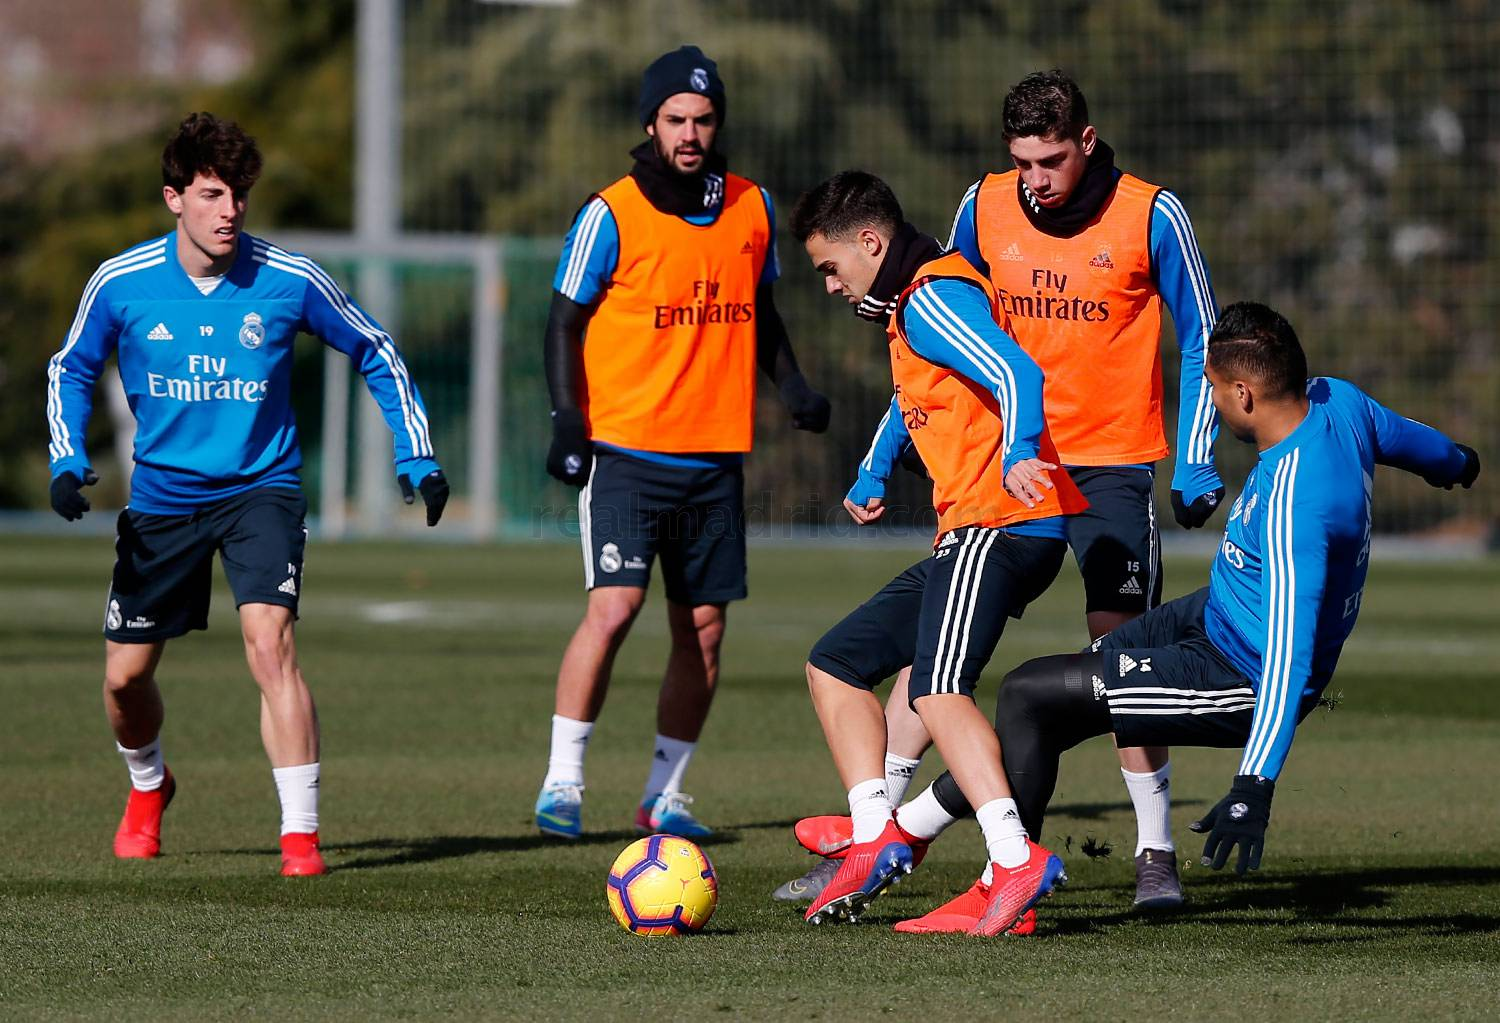 Real Madrid - Entrenamiento del Real Madrid - 01-02-2019